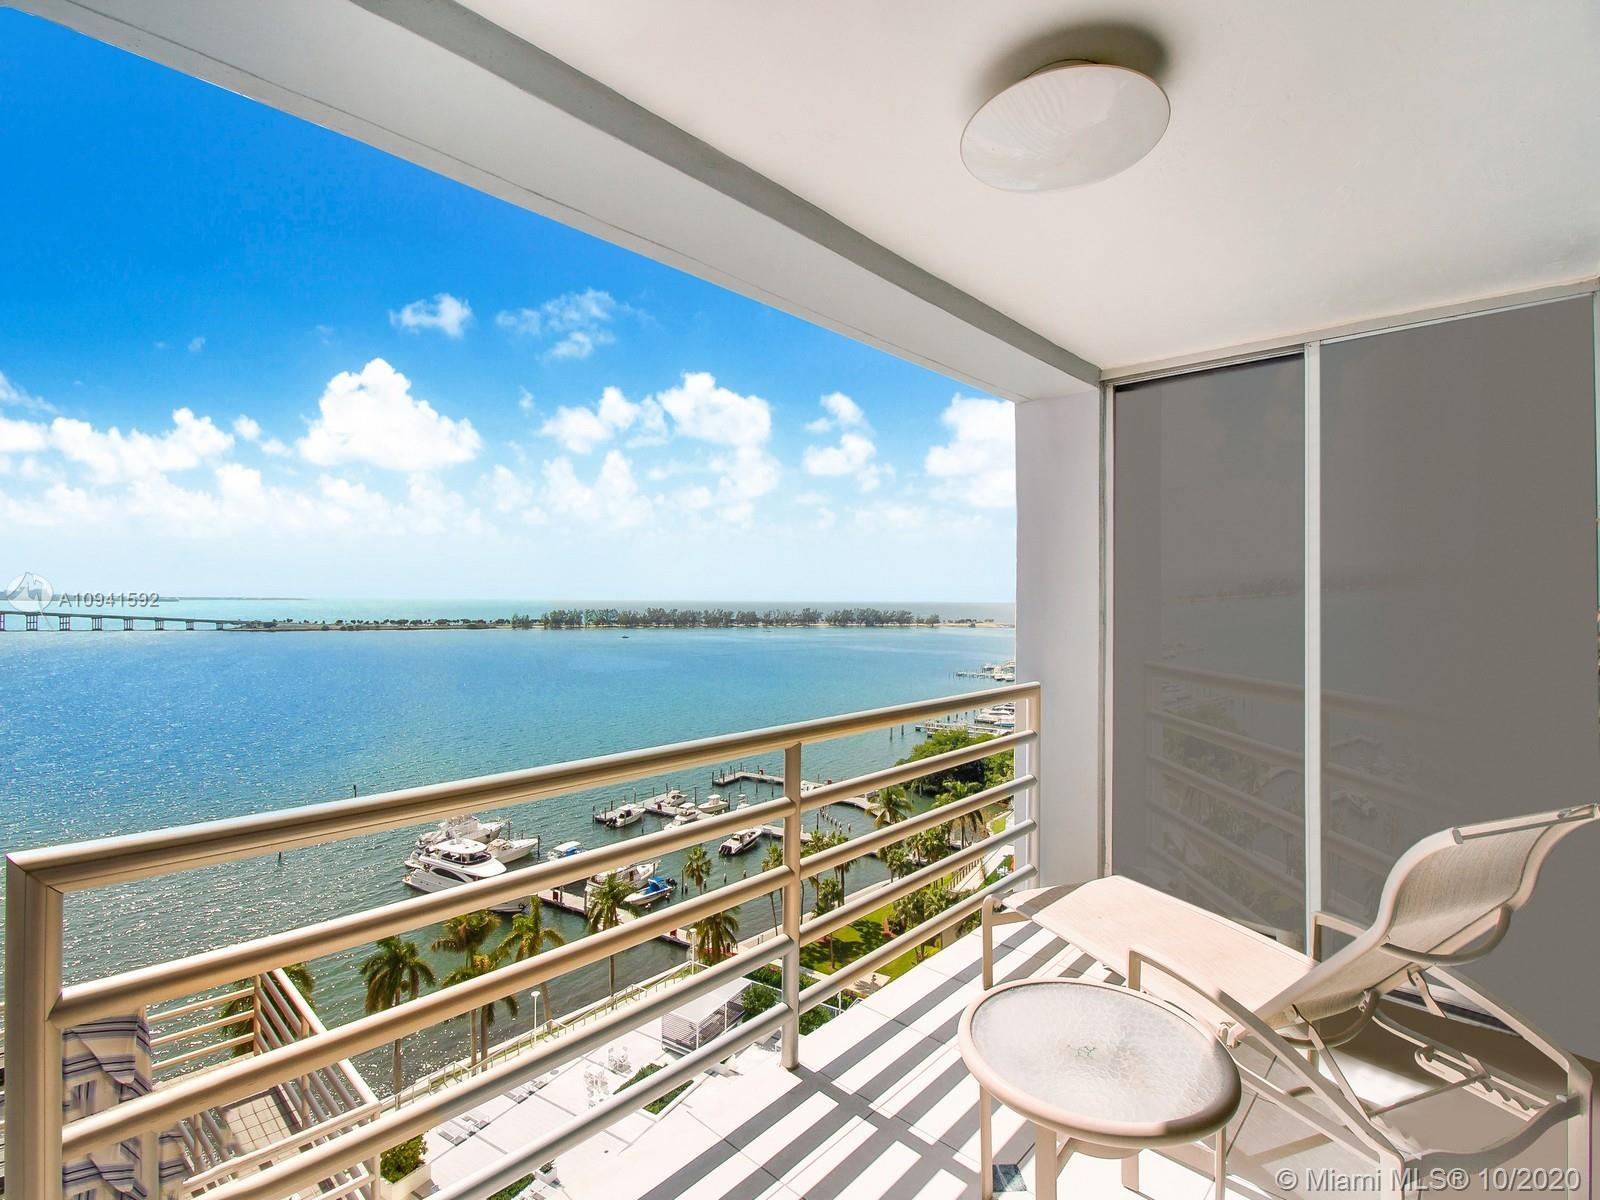 Come and see this spacious 2 bedrooms 2 baths flow through residence at The Palace Condominium with